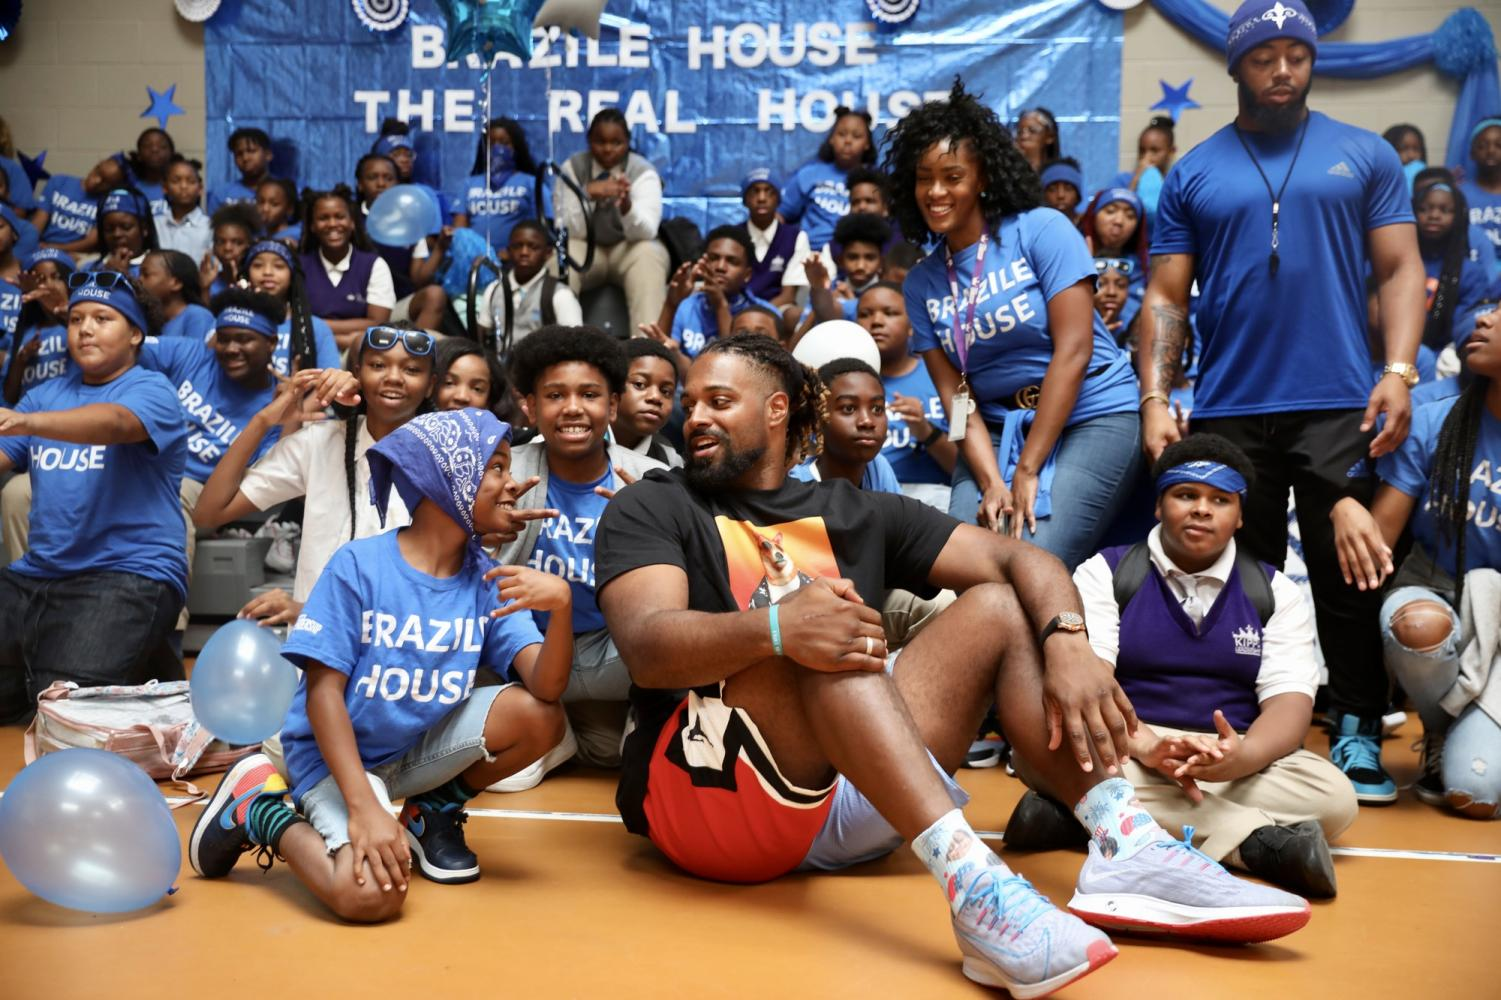 New Orleans Saints defensive end Cam Jordan takes his day off to visit students at KIPP Leadership Academy on September 3, 2019. Jordan and other organizations gave the school 400 backpacks and $10,000 to help with school activities. Photo credit: Andres Fuentes